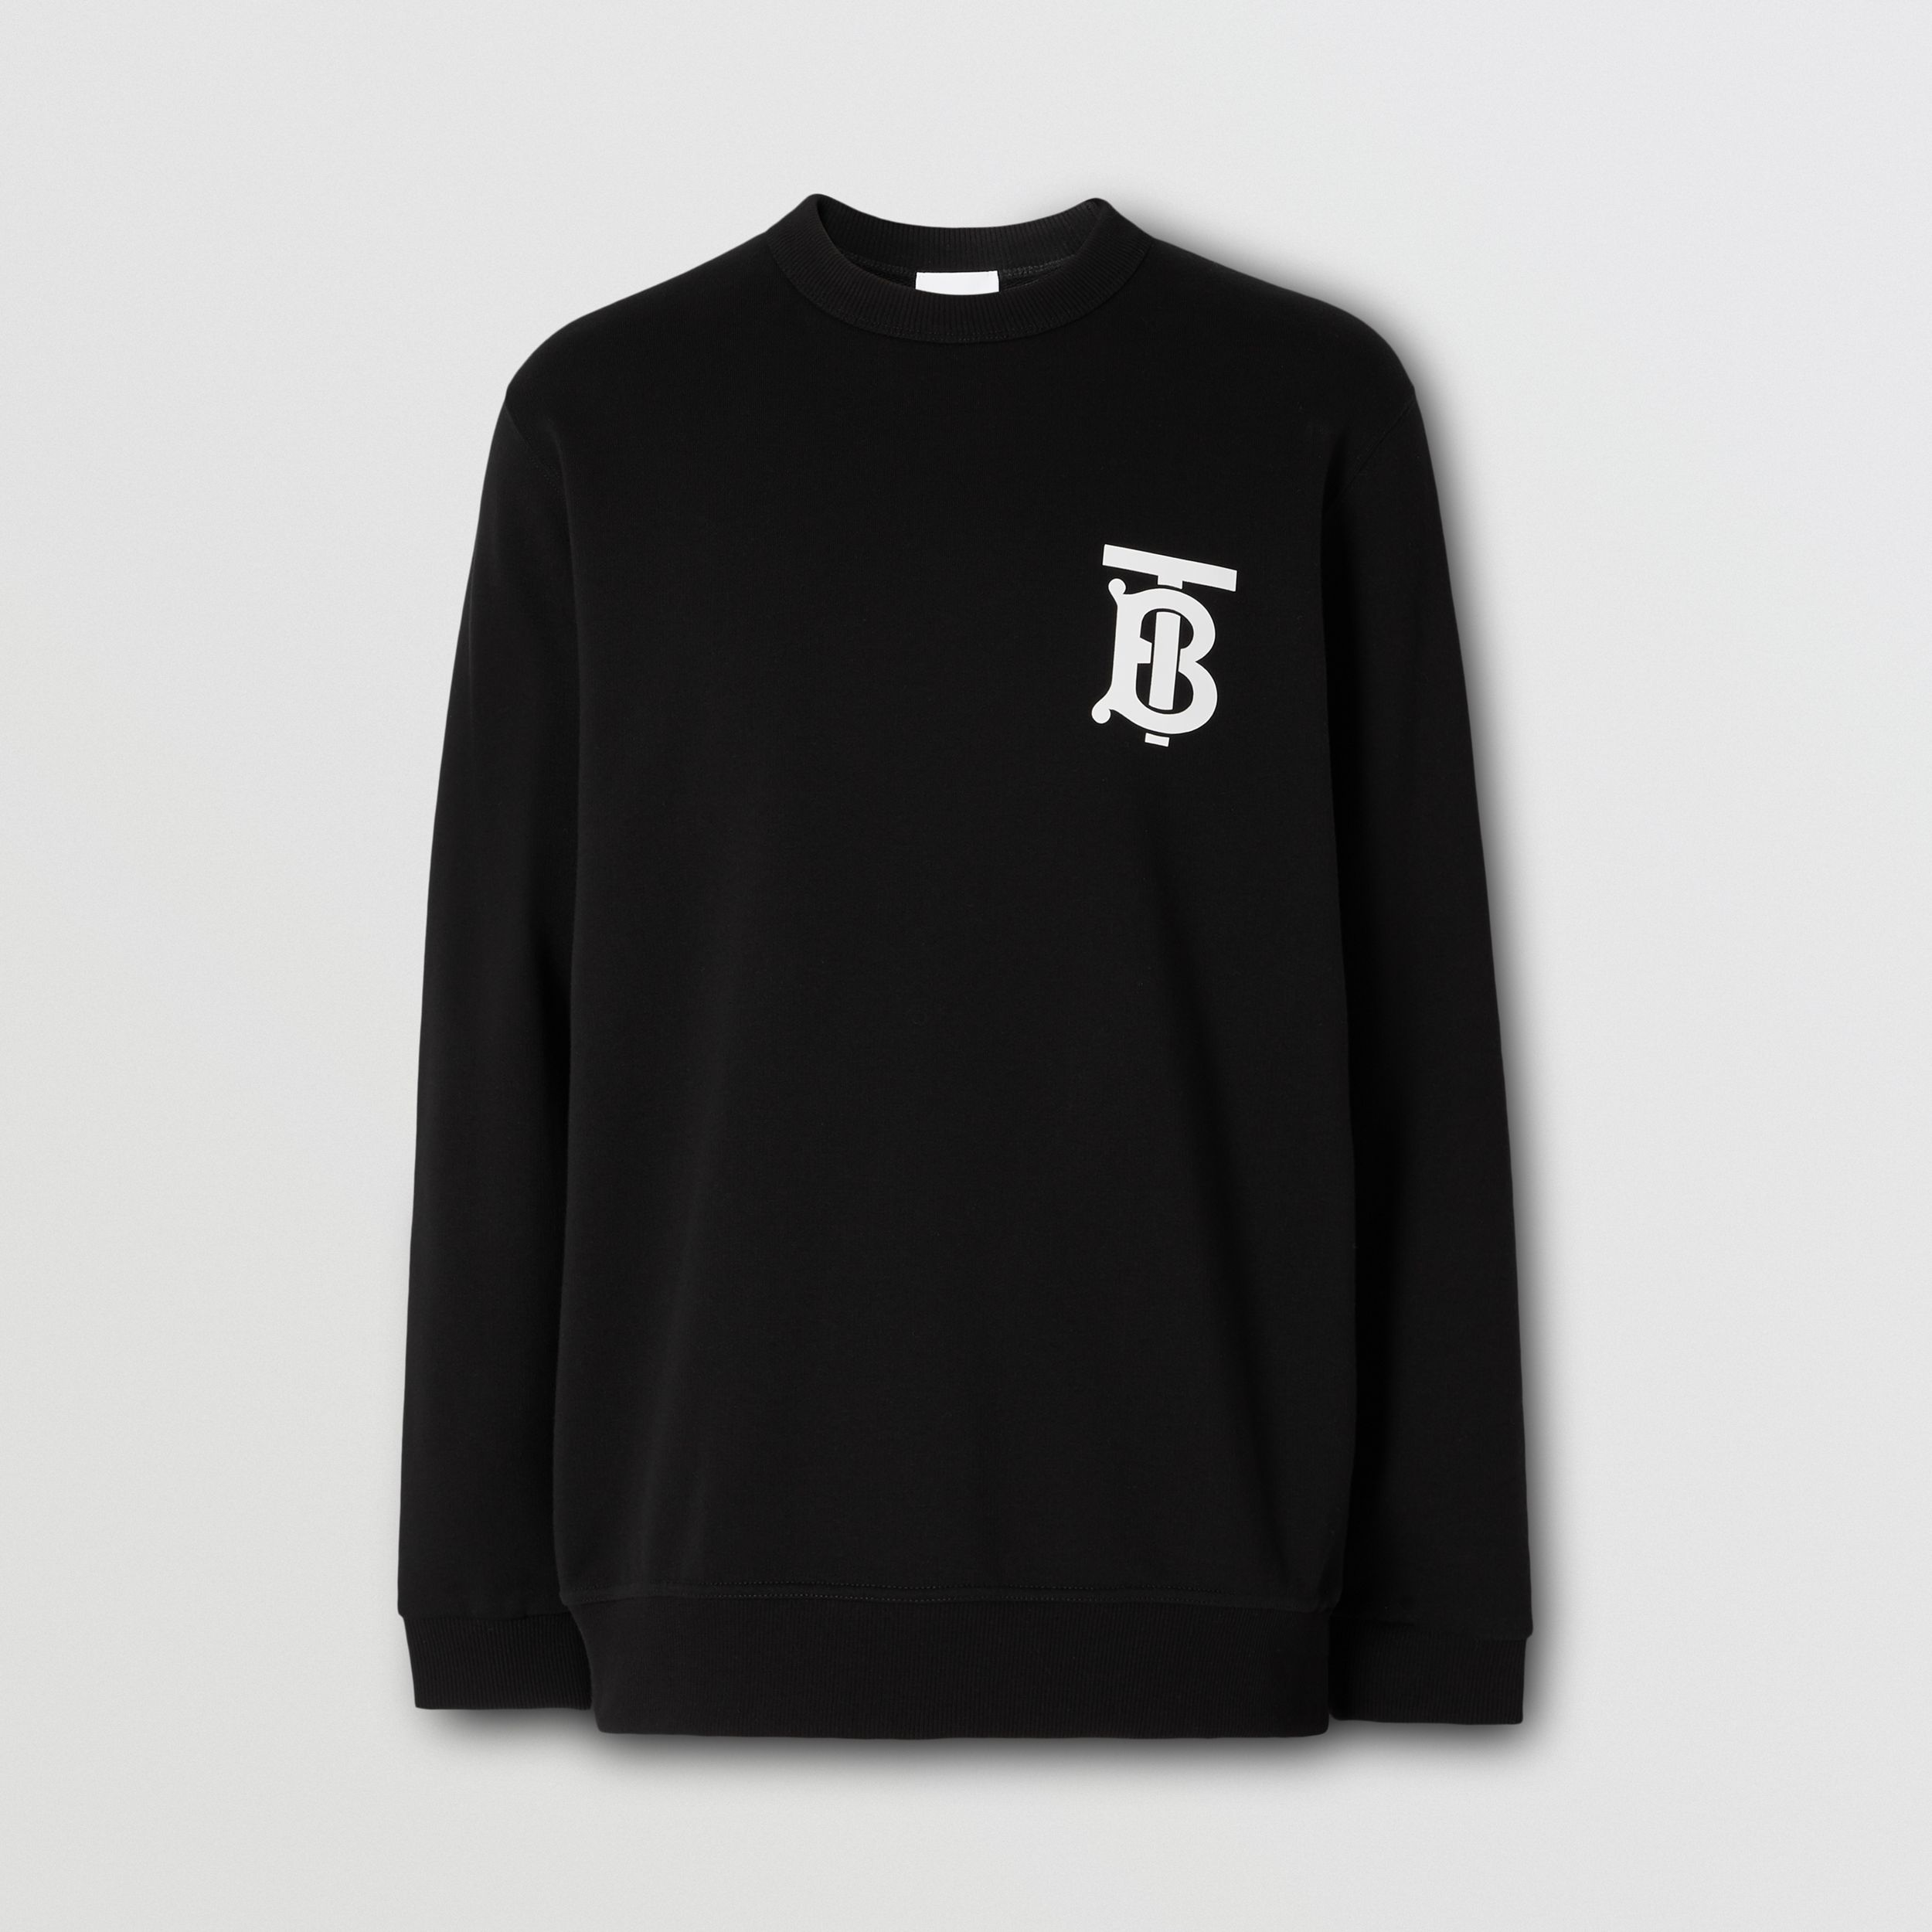 Monogram Motif Cotton Sweatshirt in Black - Men | Burberry - 4